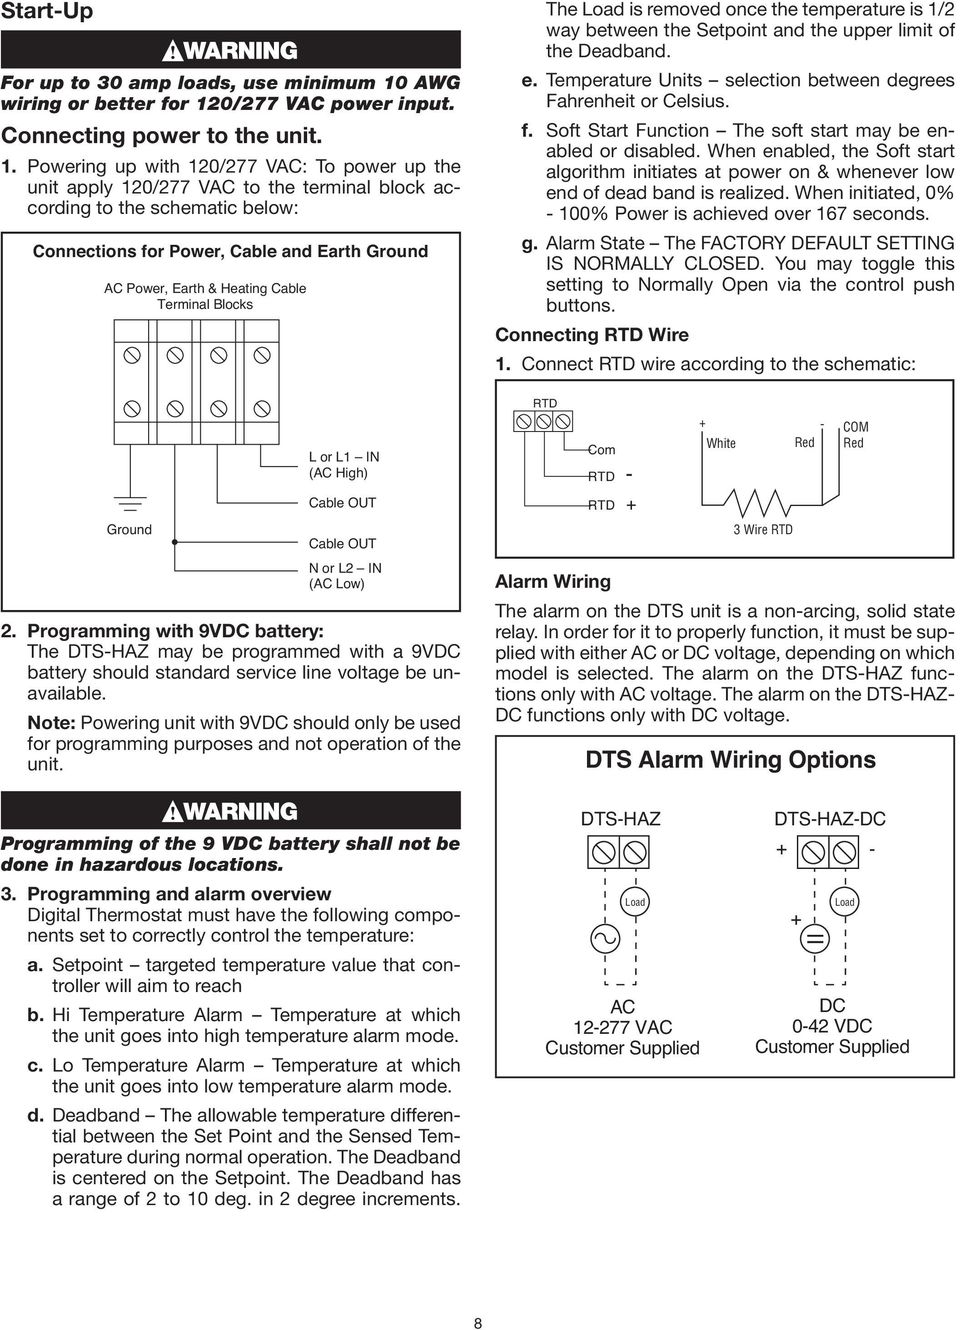 Dts Haz Dc Installation Instructions For Use With Self 277vac Wiring 0 277 Vac Power Input Connecting To The Unit 1